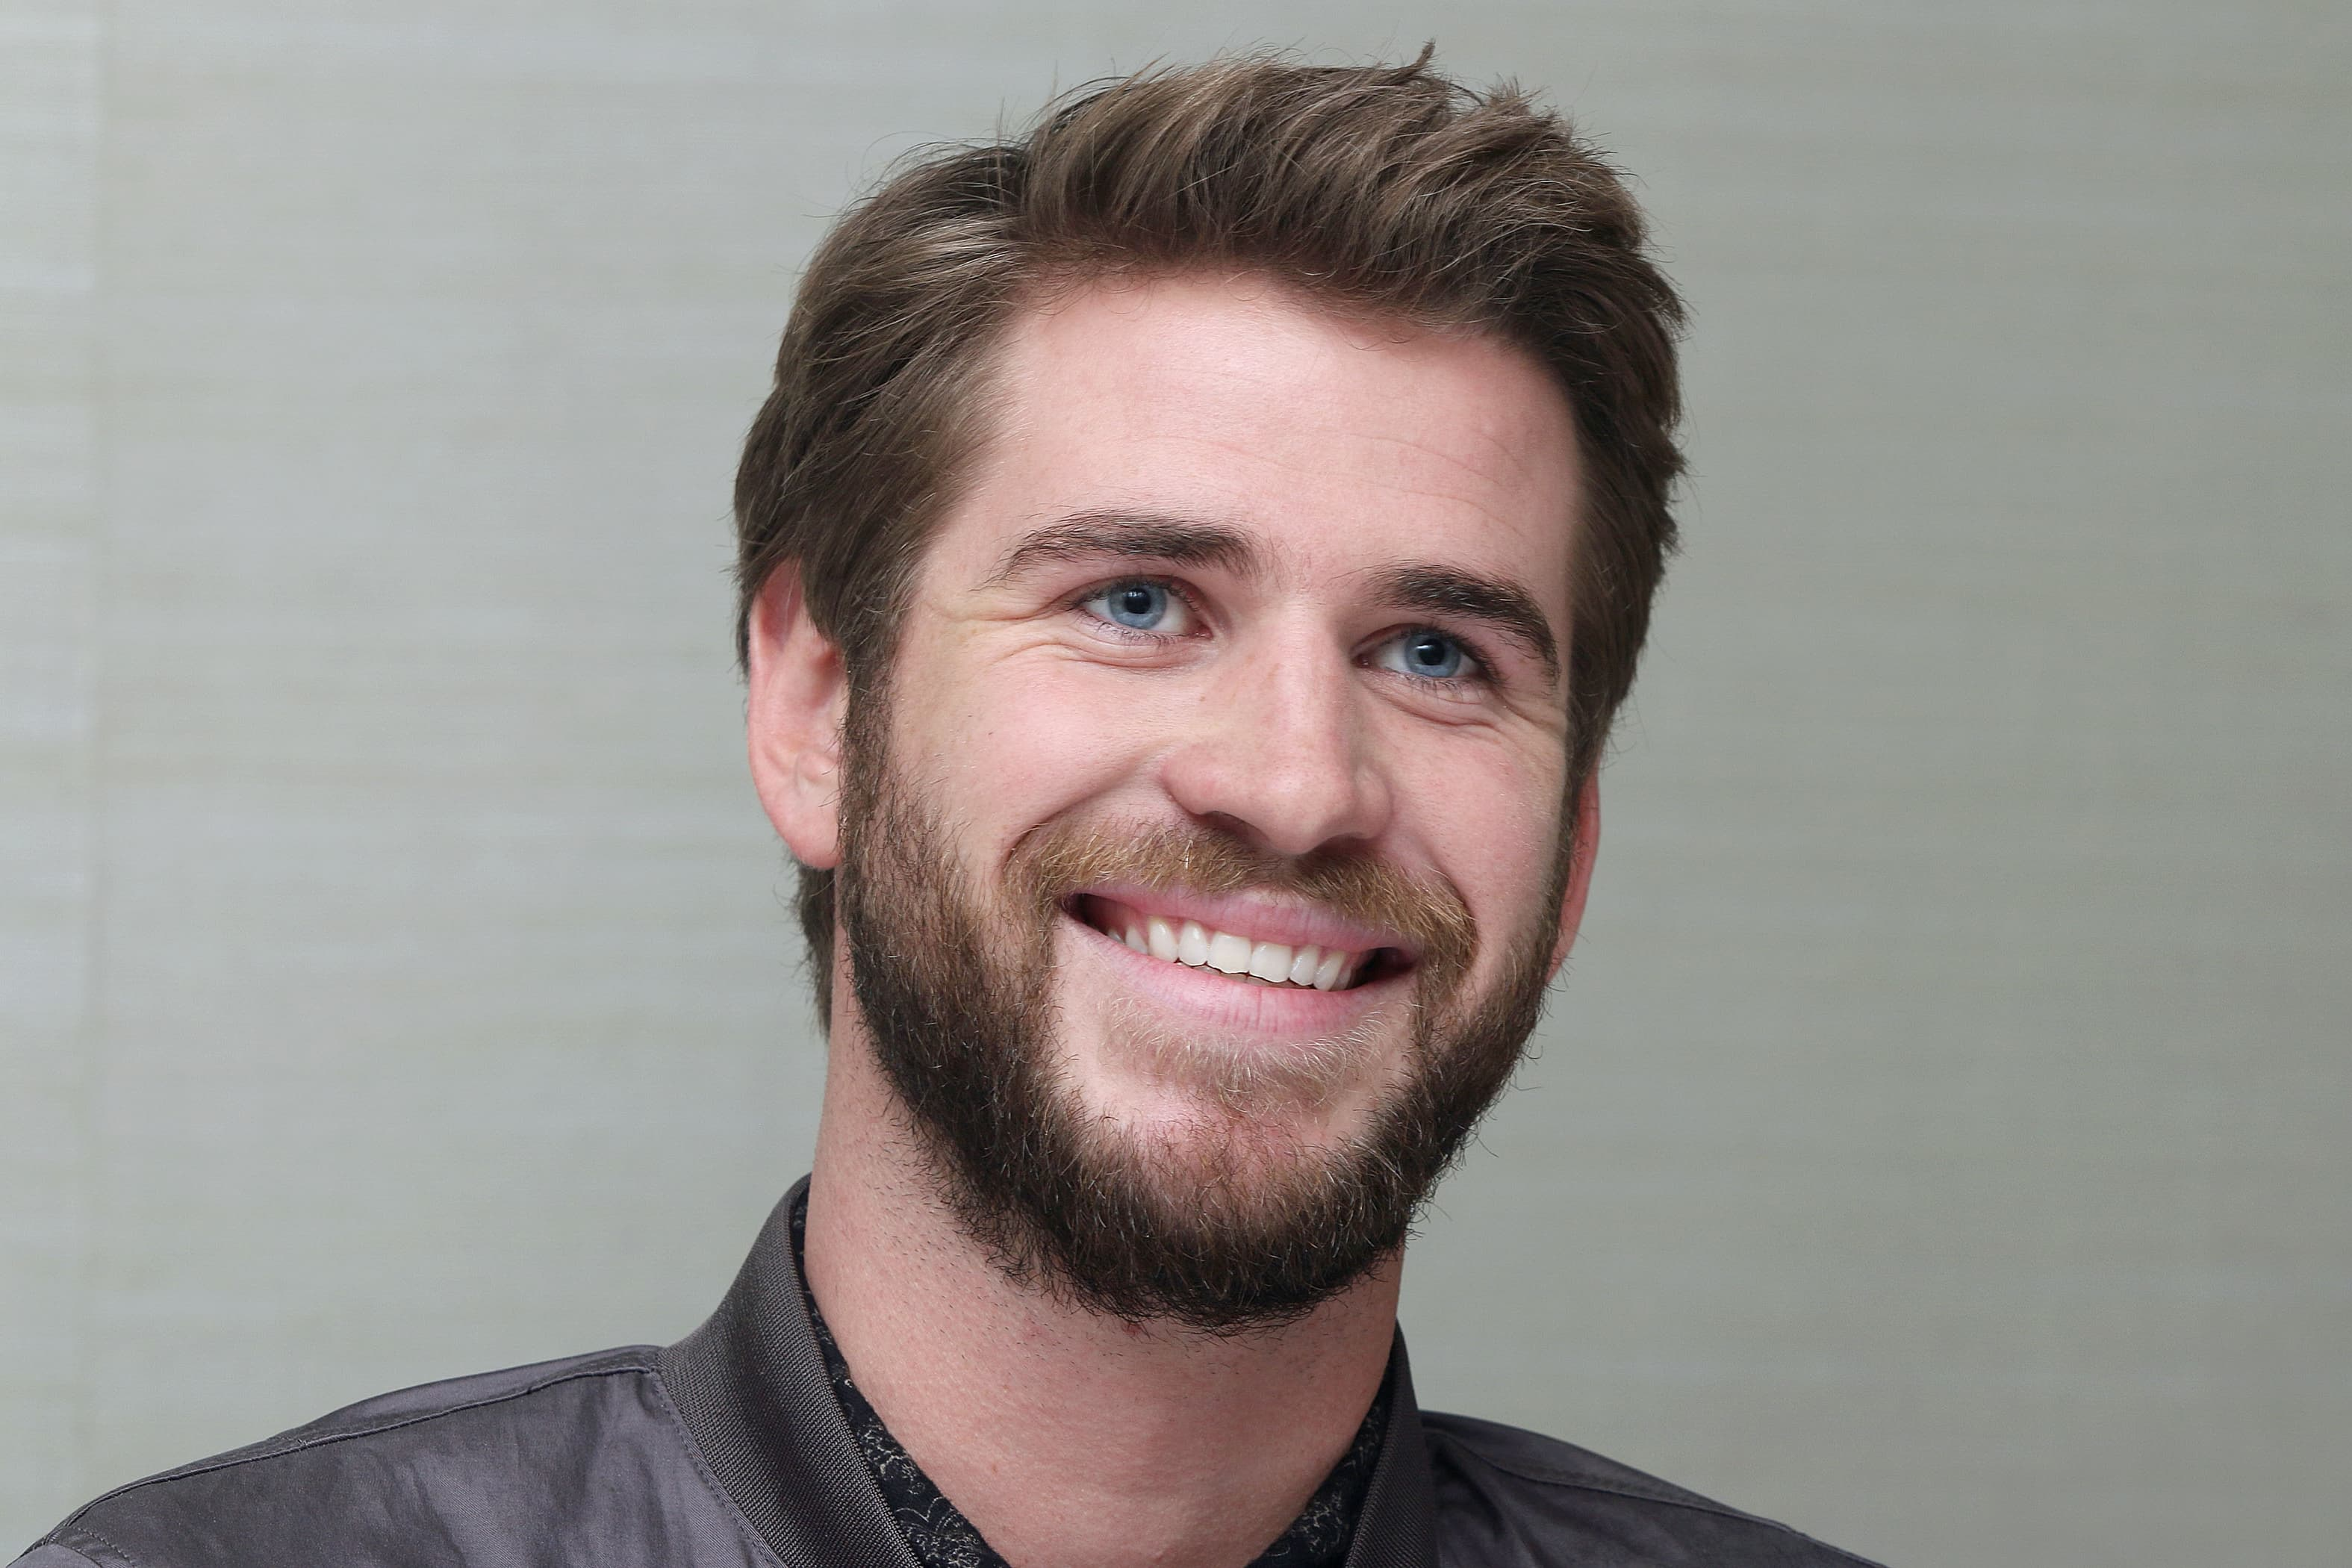 Best Wallpaper For A Car Liam Hemsworth Hd Wallpapers Free Download